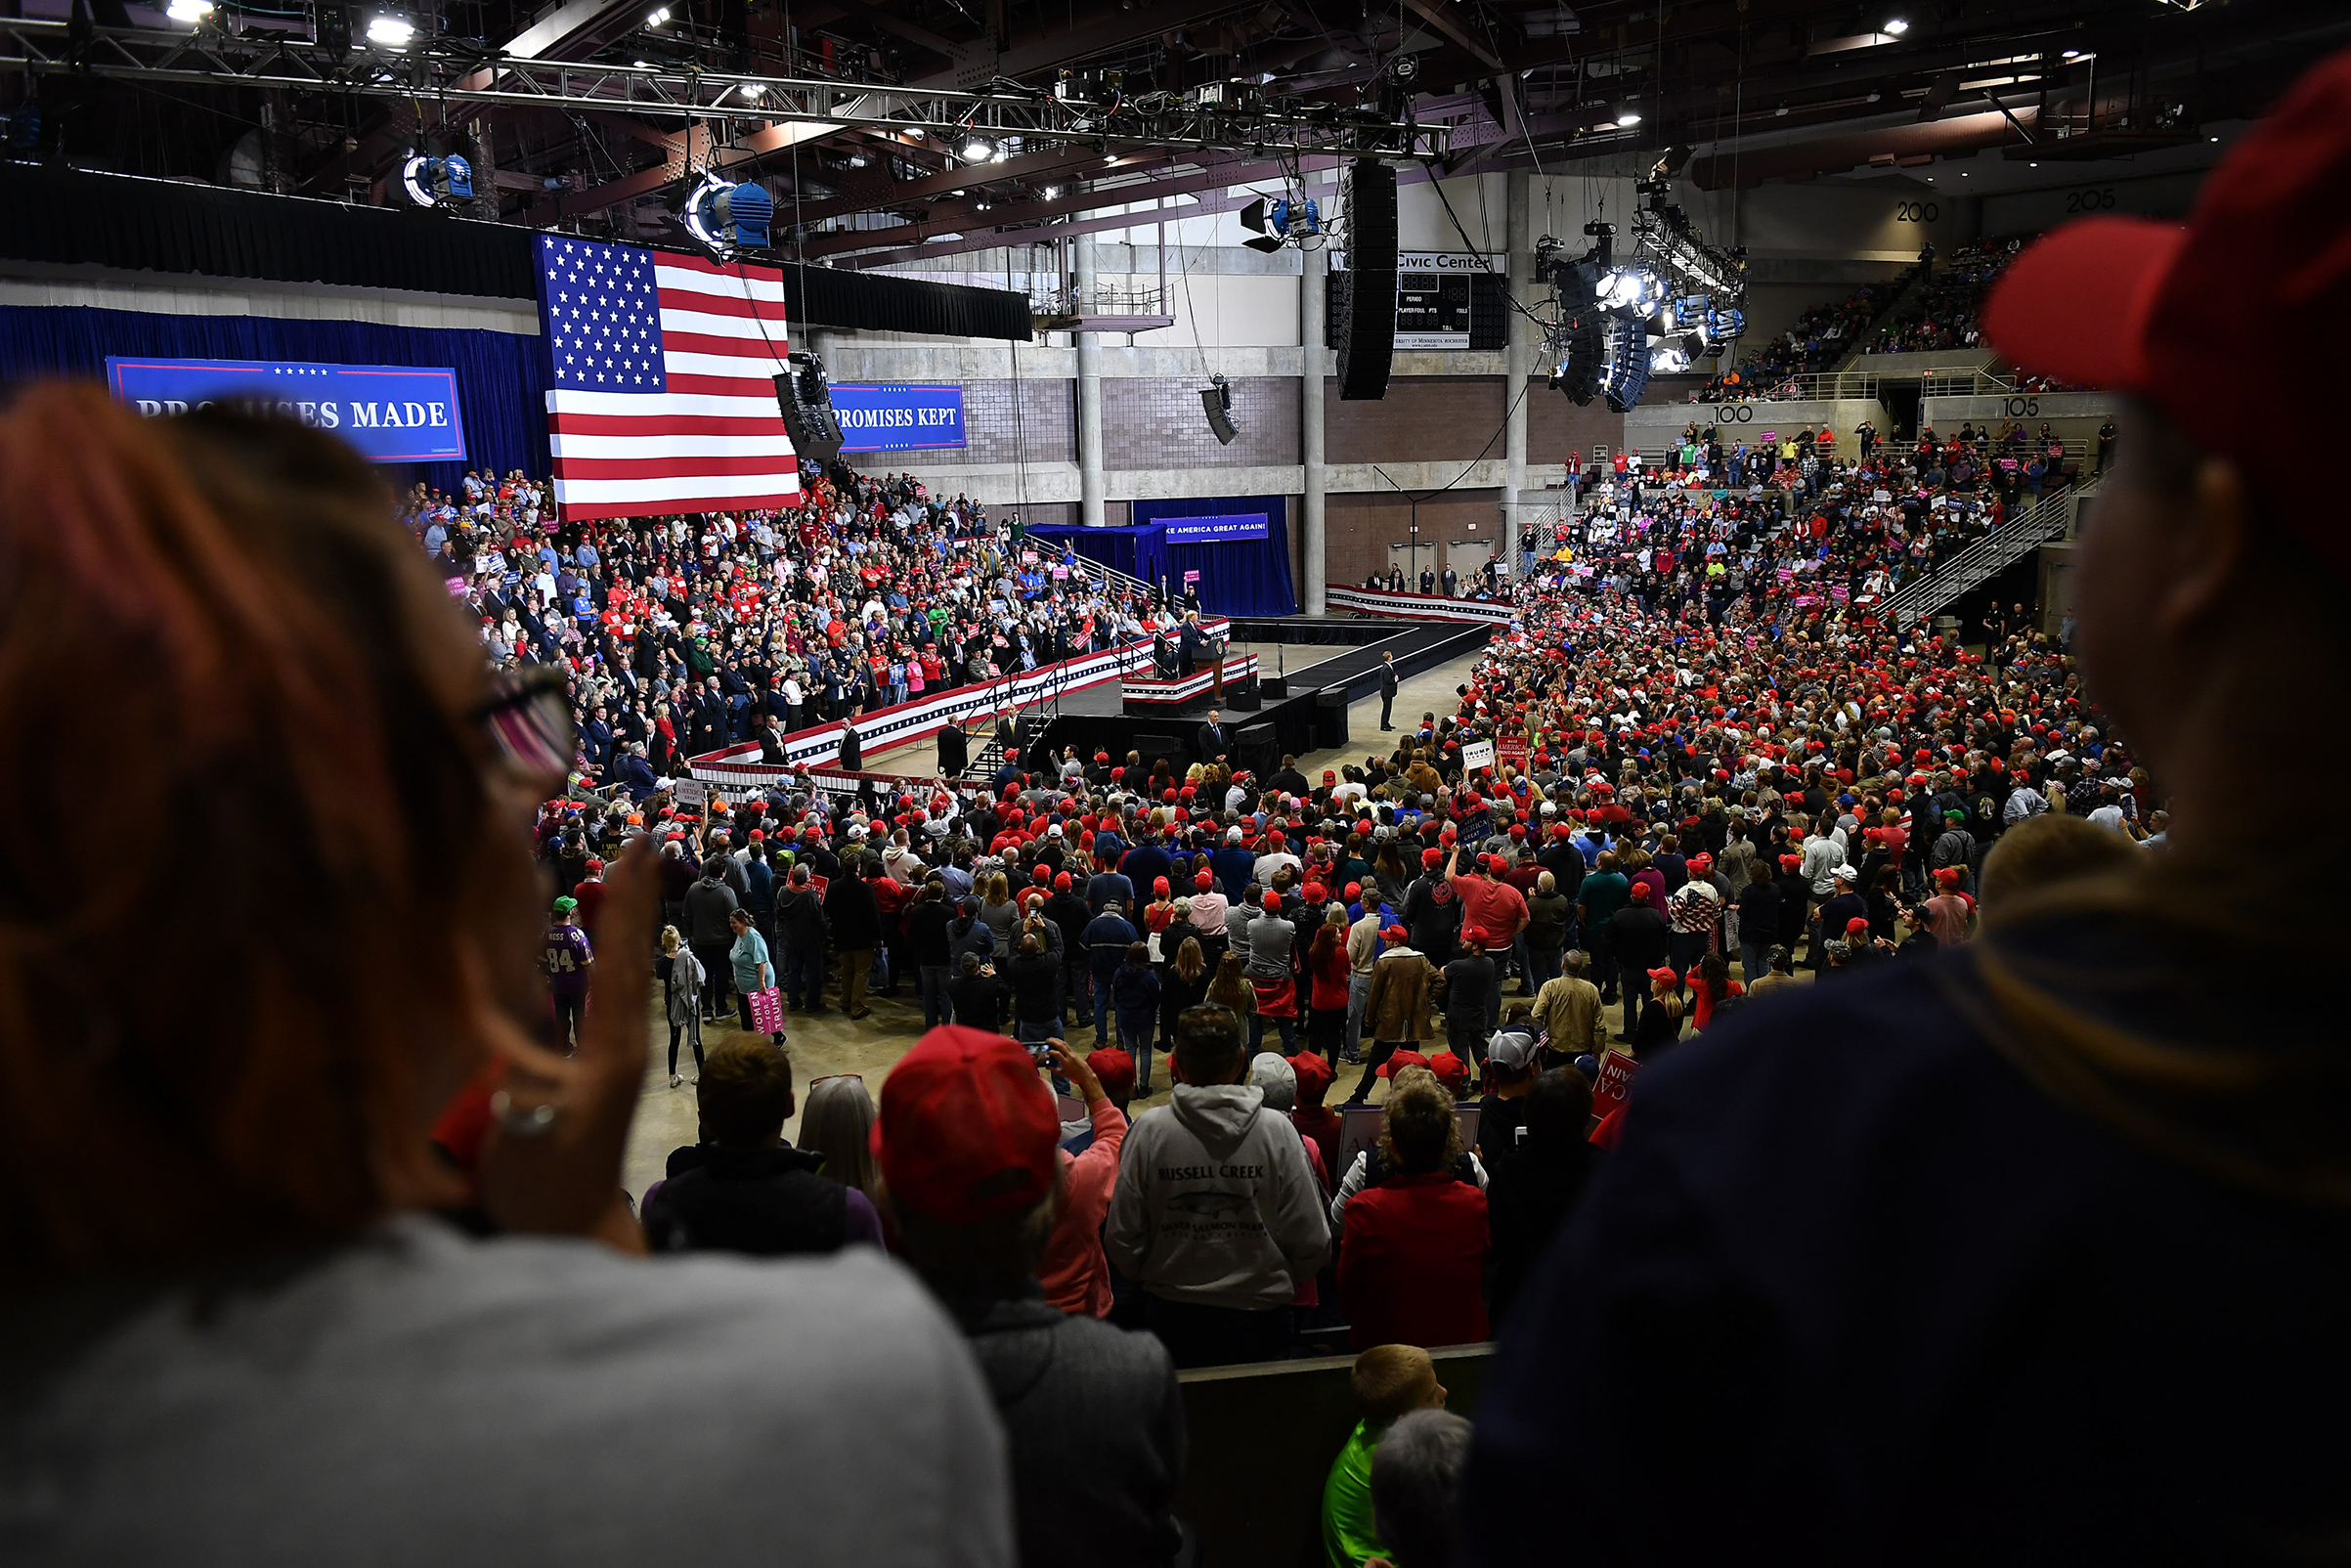 President Donald Trump speaks at a rally in the Mayo Civic Center in Rochester, Minn. on Oct. 4, 2018.